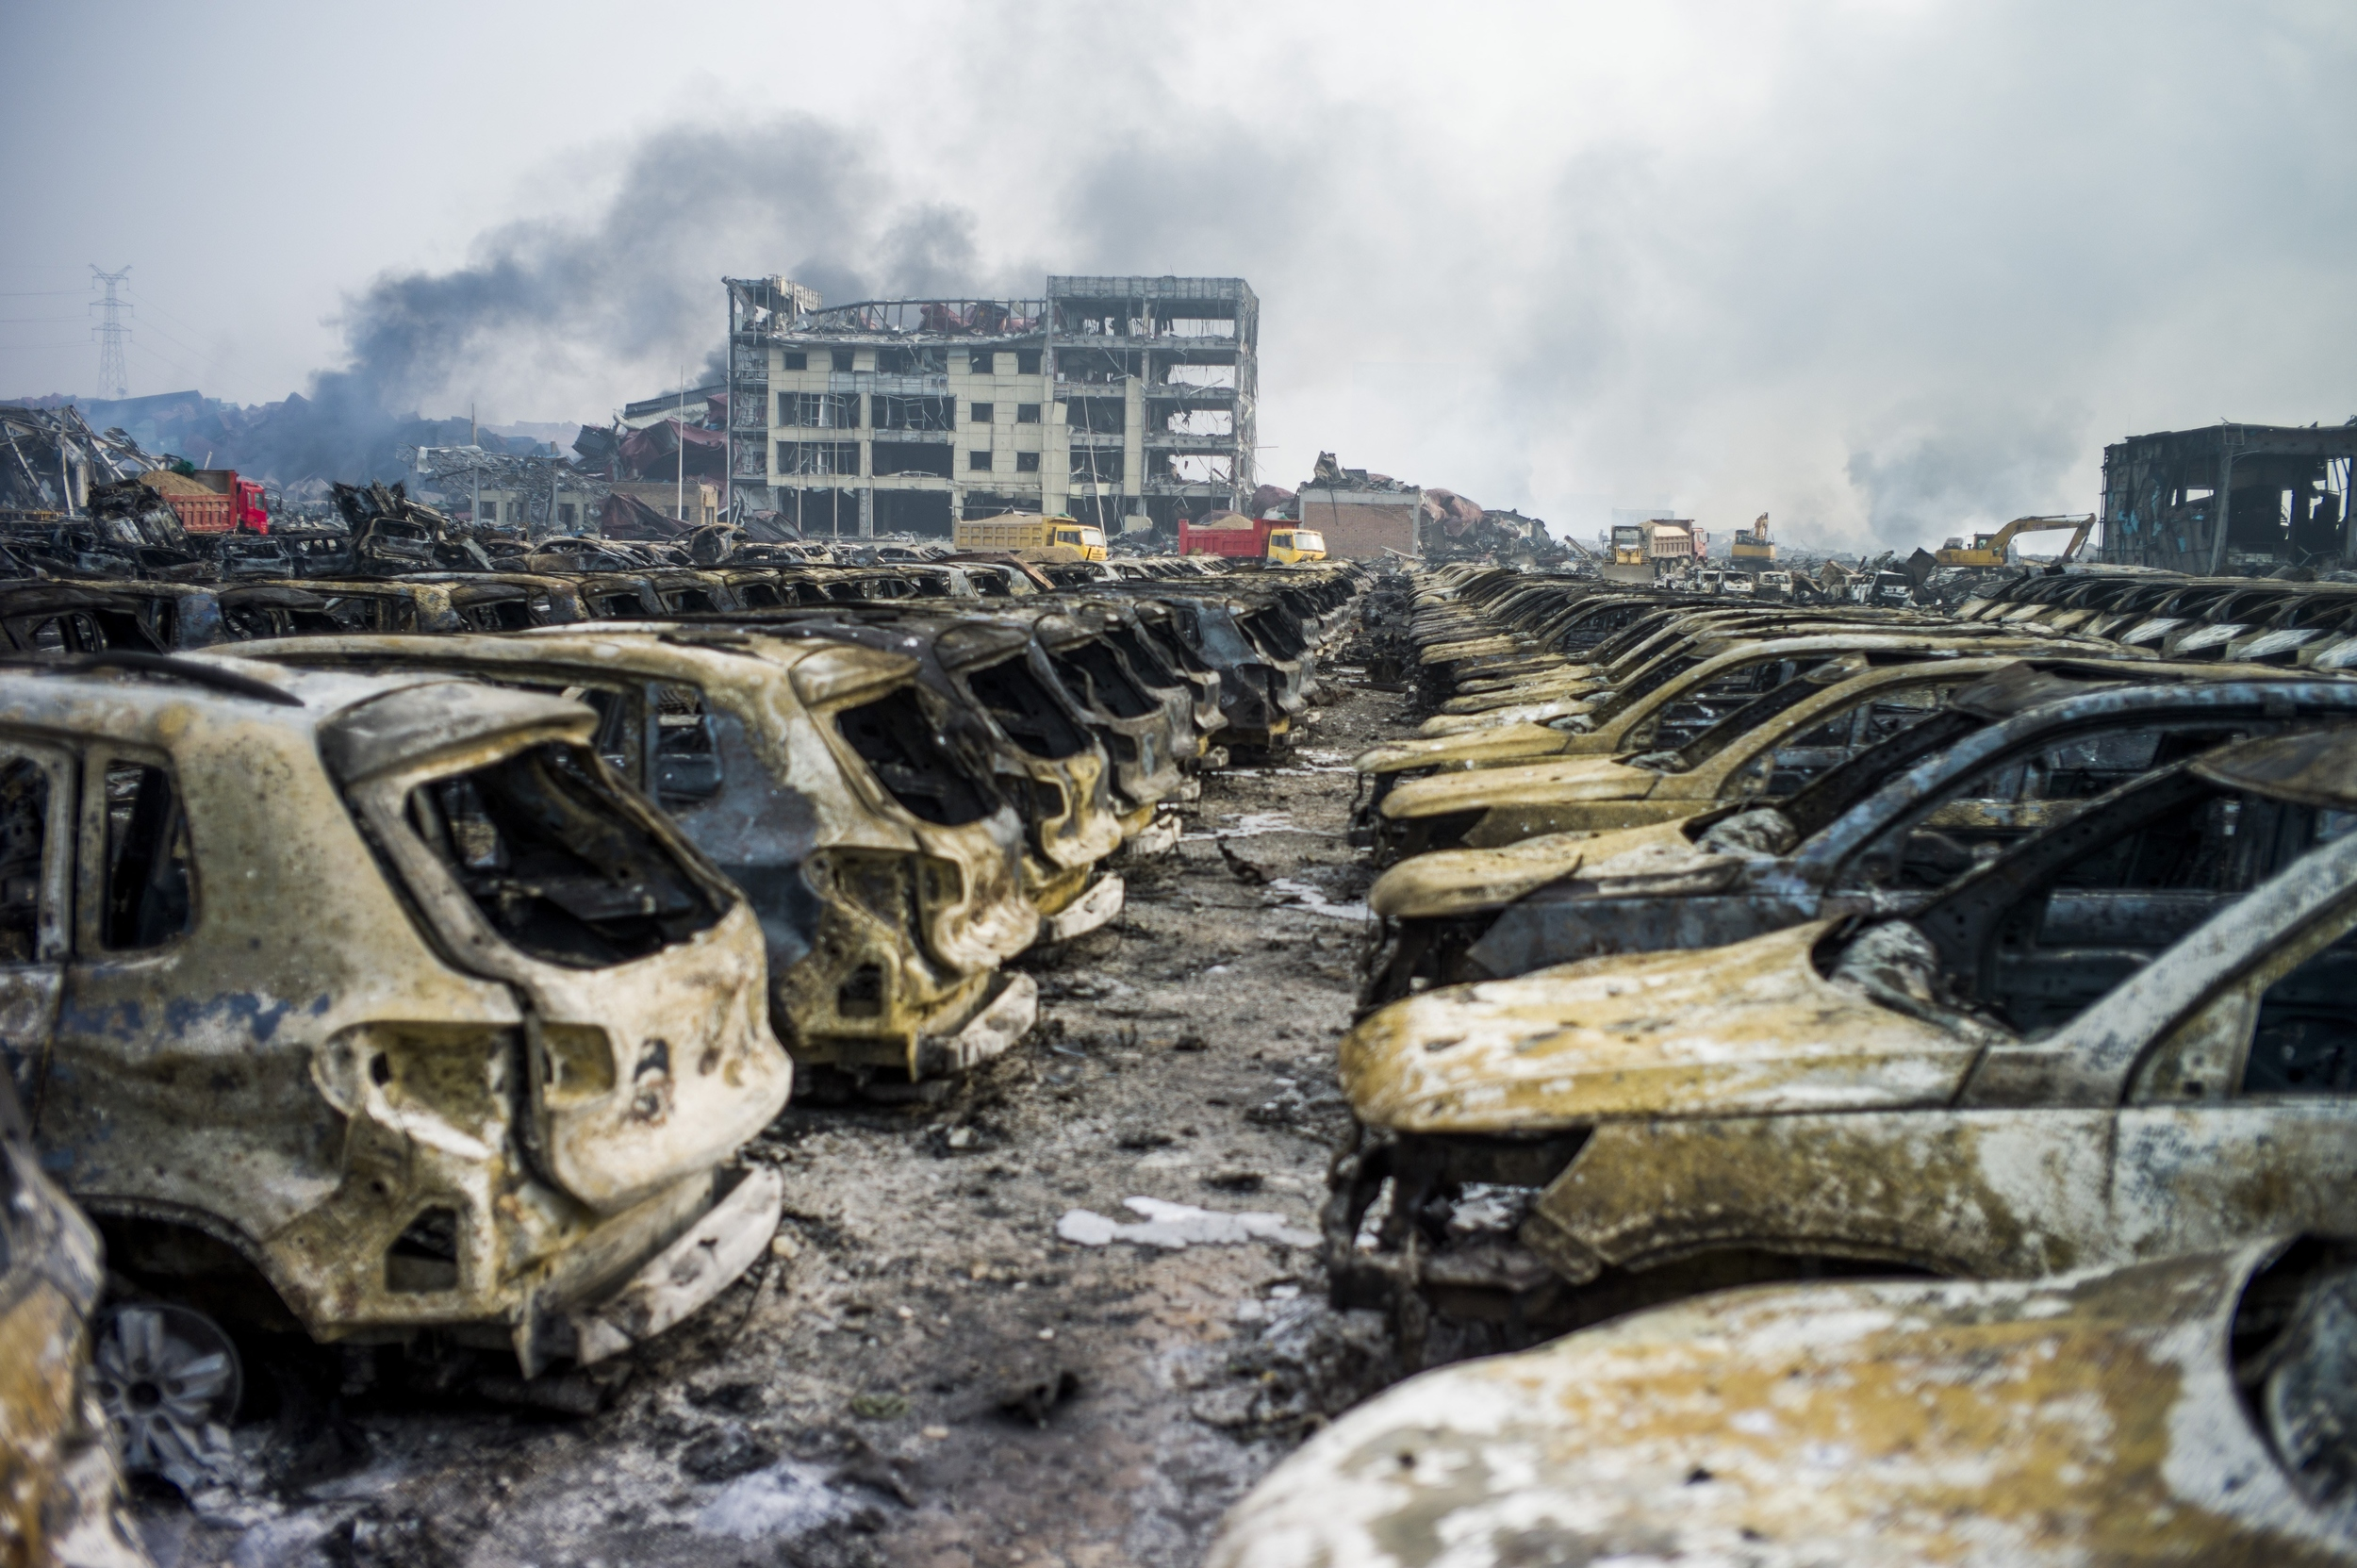 Tianjin China  city images : China blast zone evacuated over chemical contamination fears AOL.com